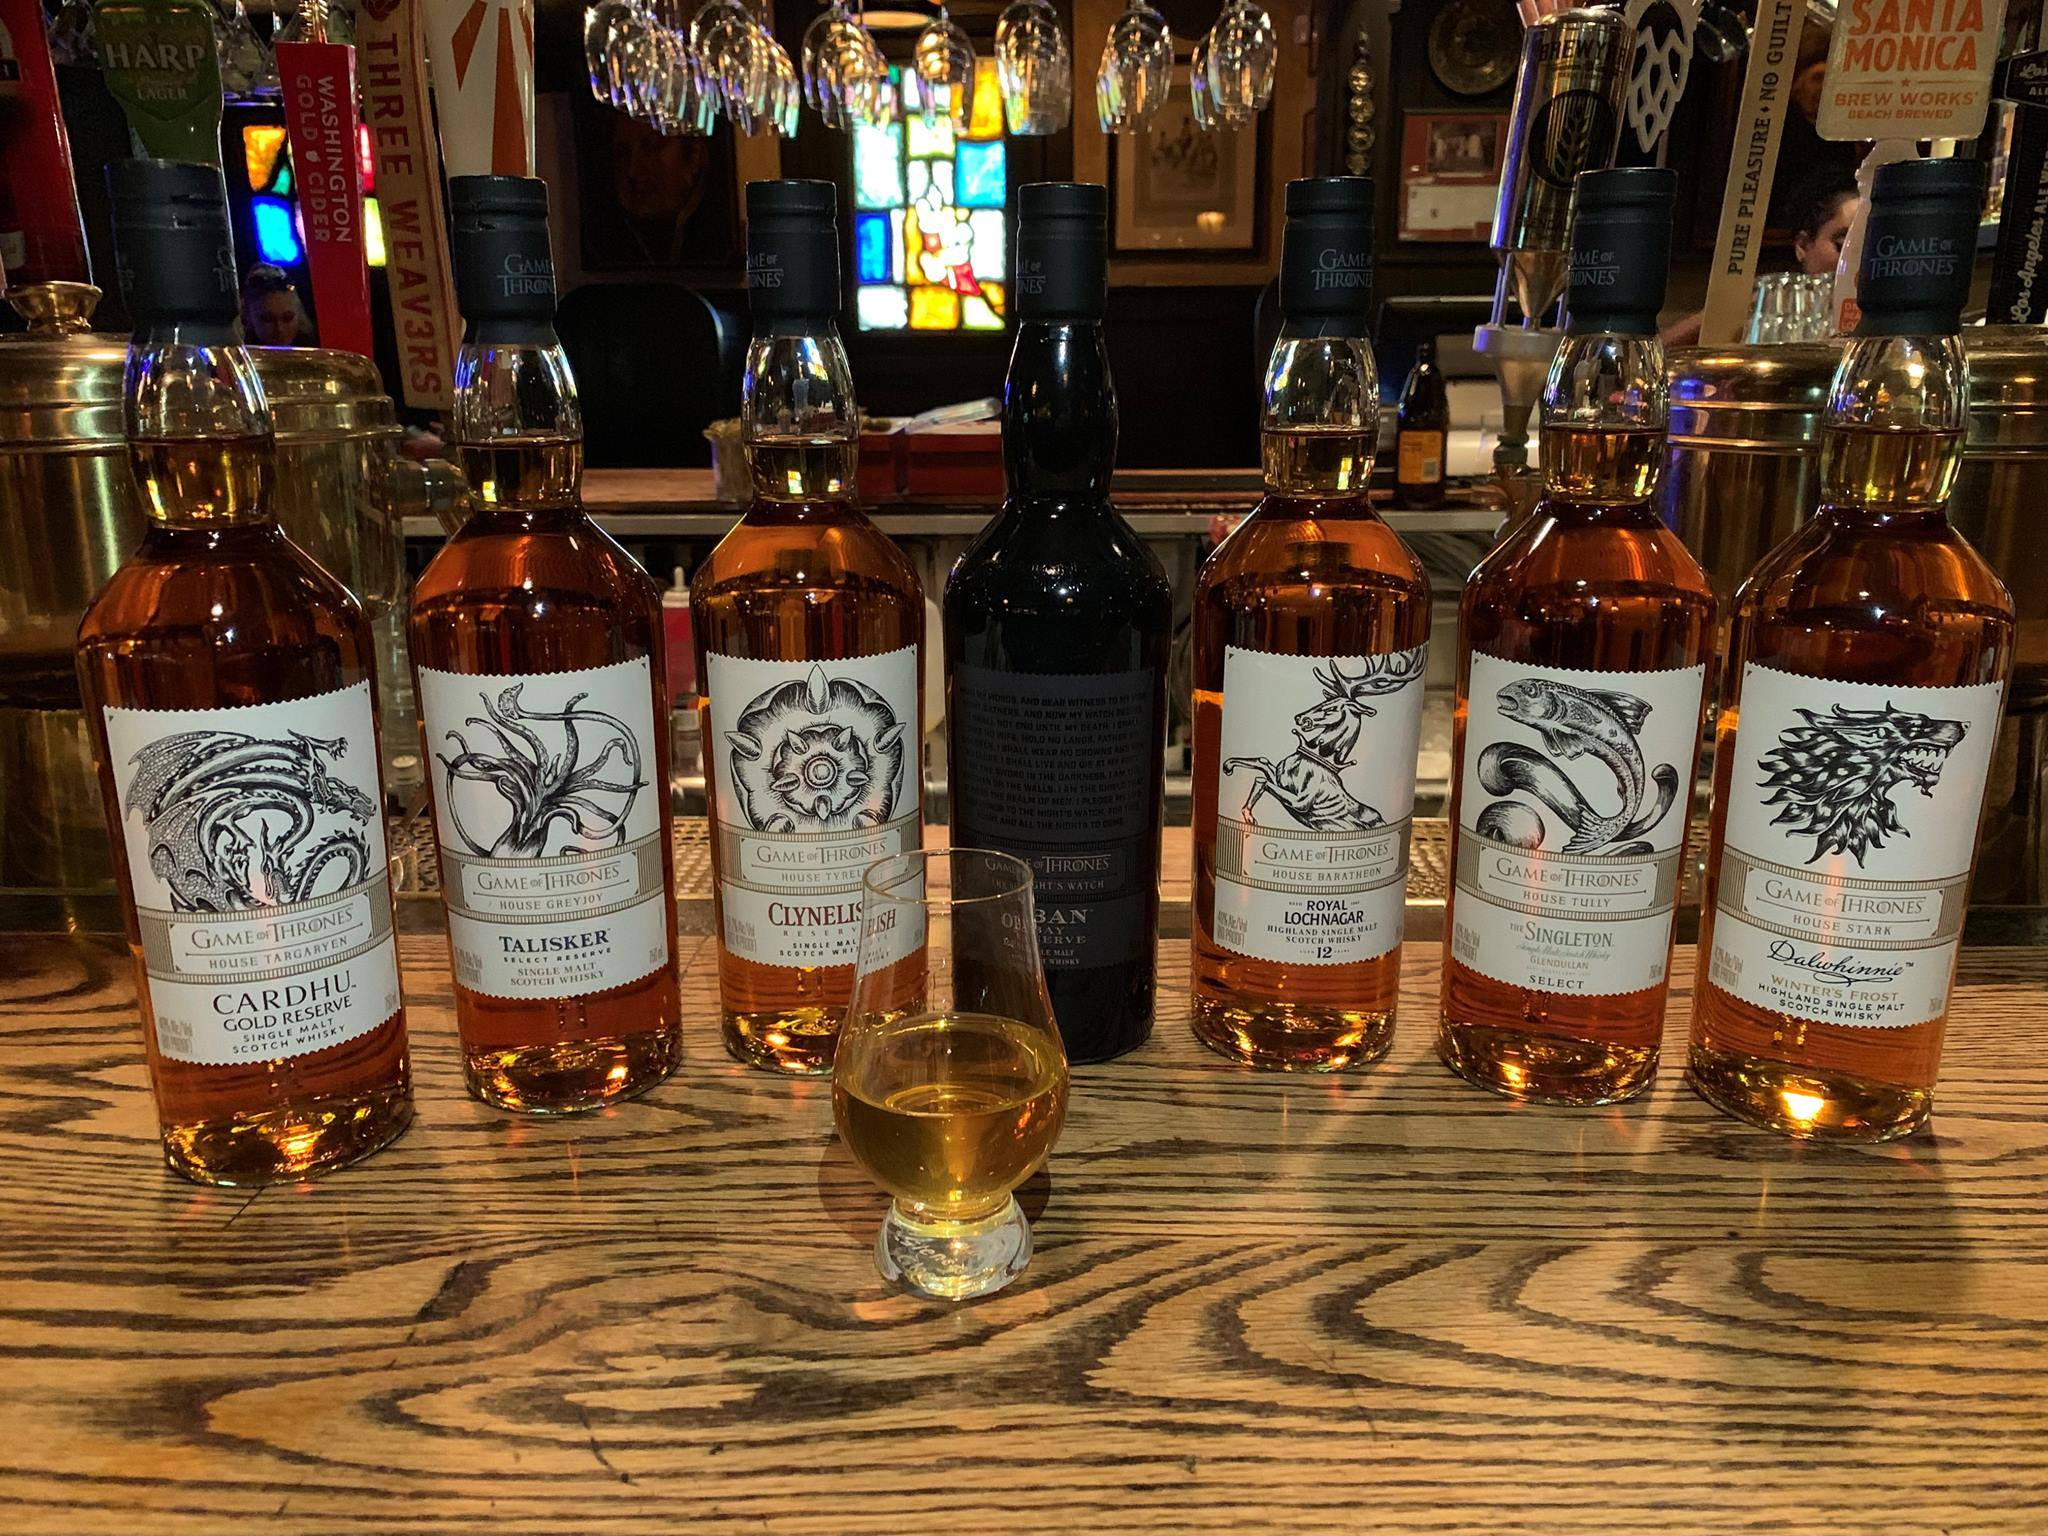 Game of Thrones whiskies at The Tam O'Shanter